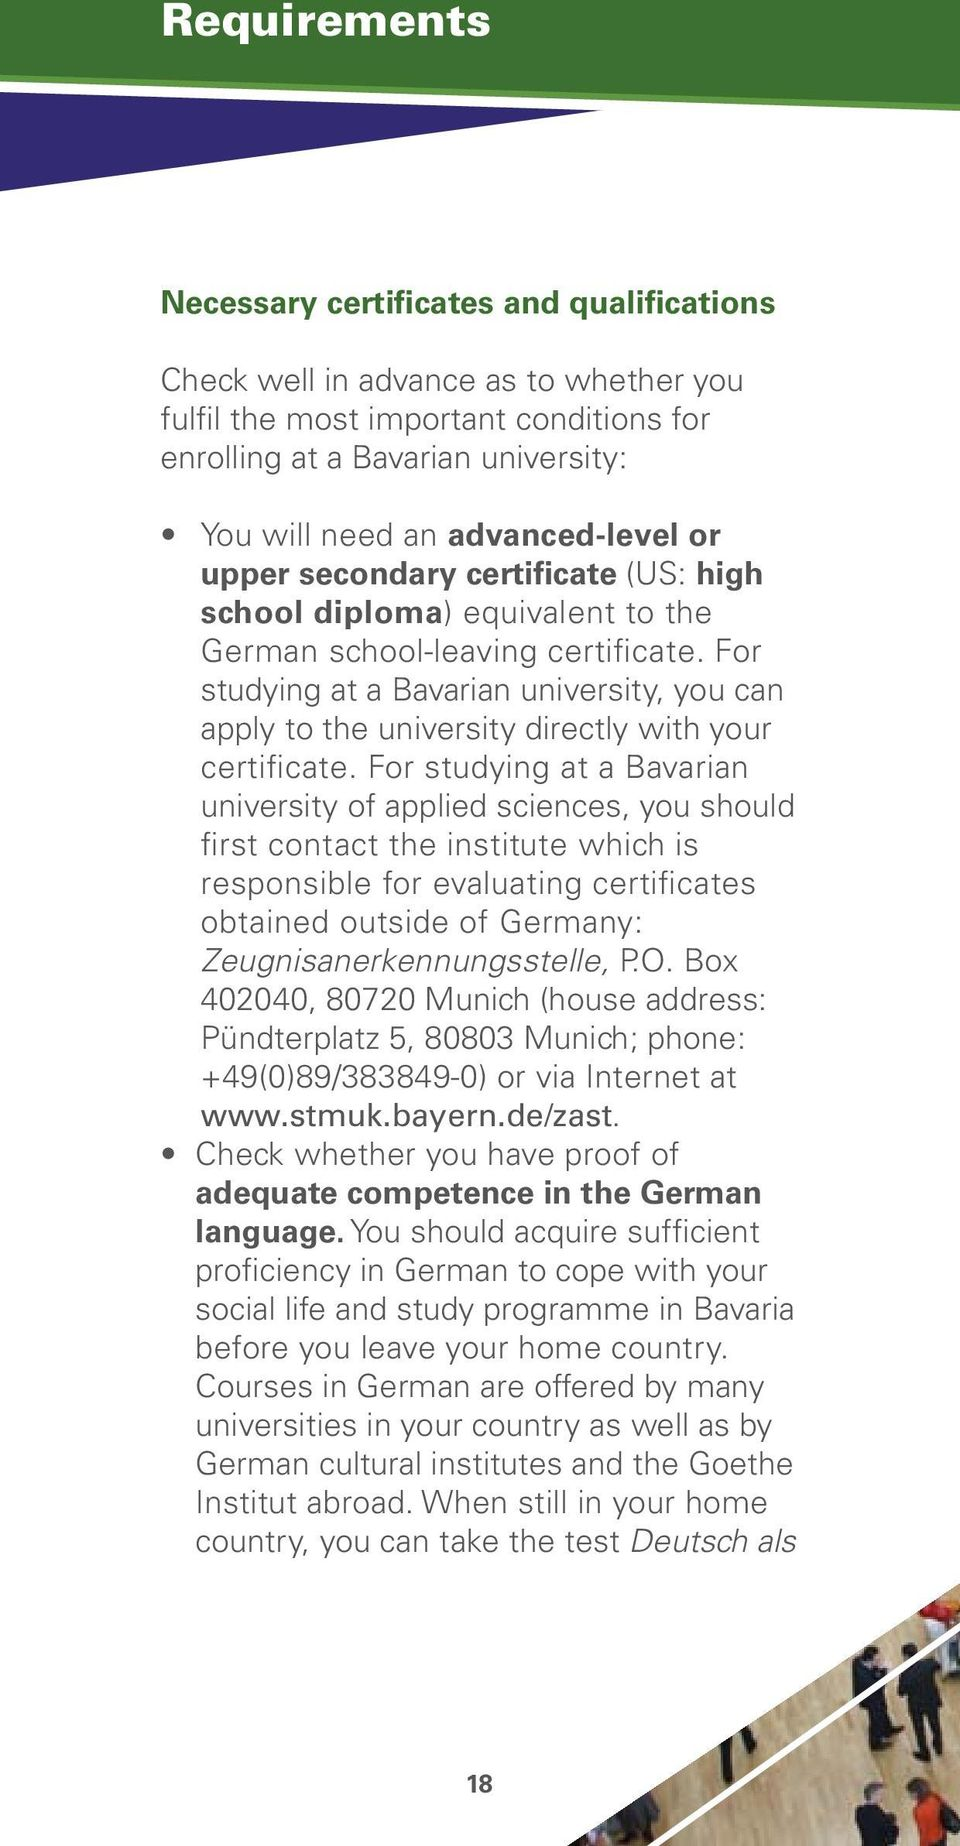 For studying at a Bavarian university, you can apply to the university directly with your certificate.